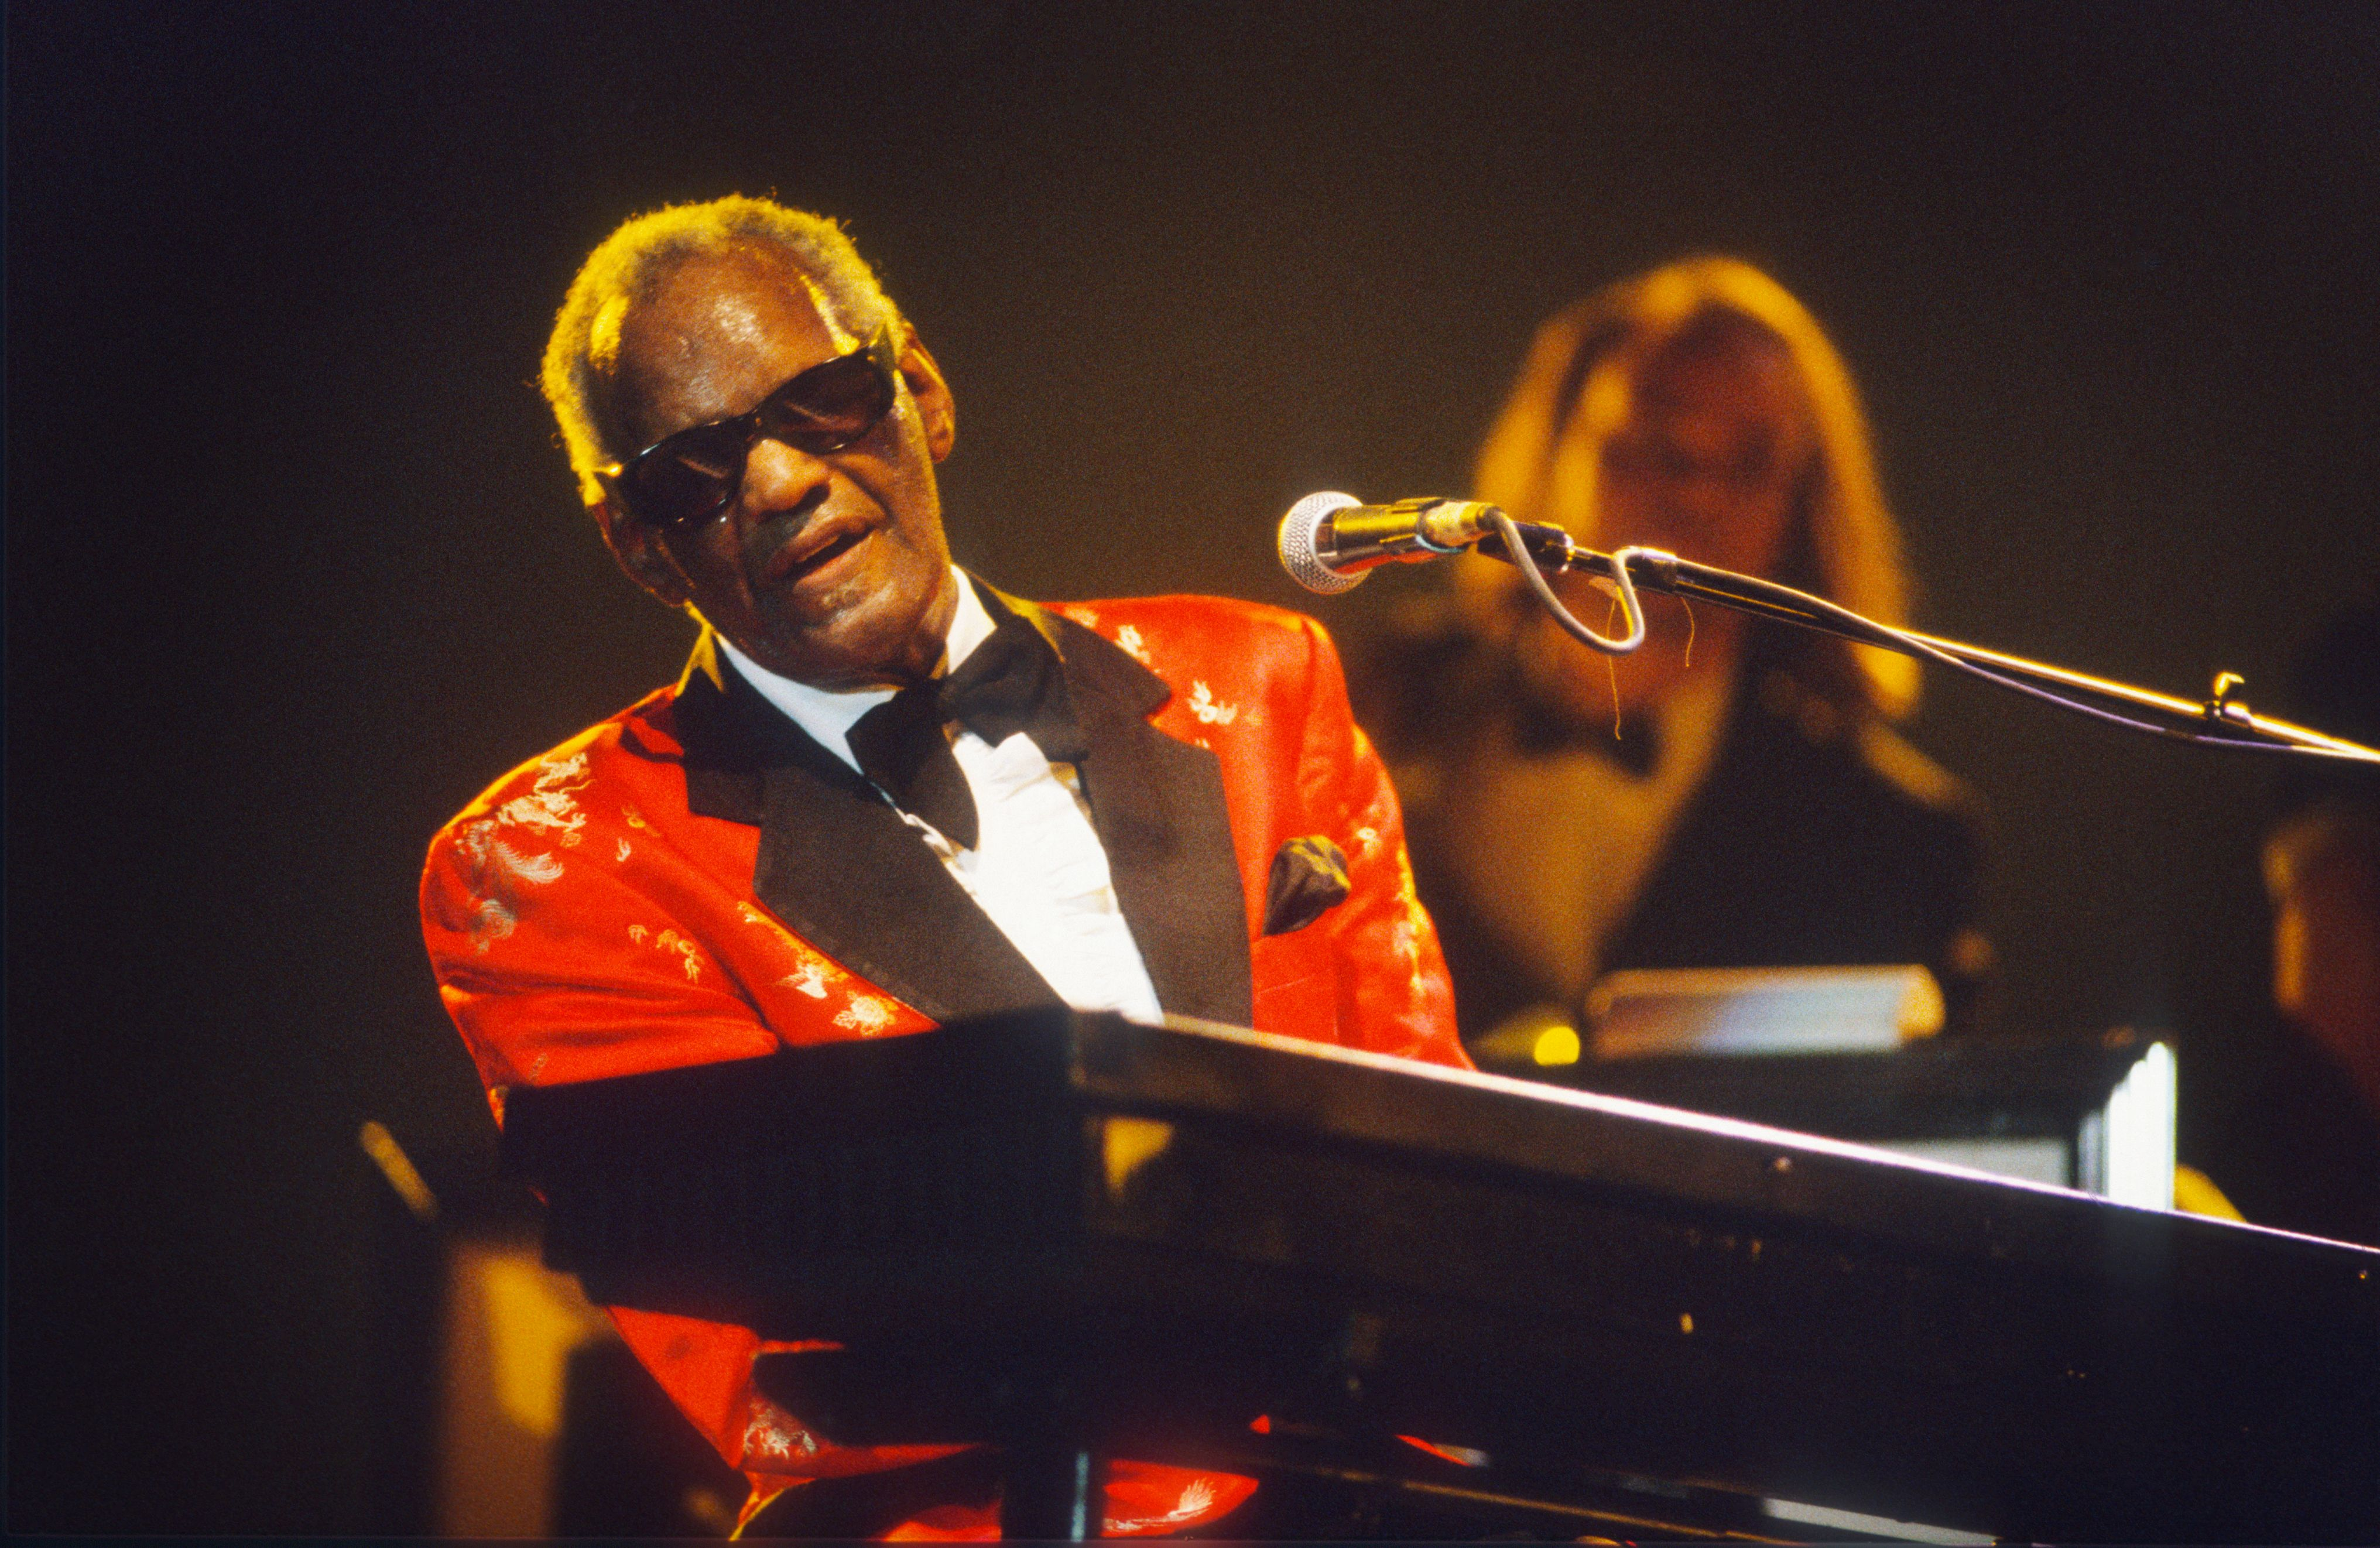 Ray Charles at the Rhythm 'n' Blues Festival in Peer, Belgium on January 07, 1994 | Photo: Gie Knaeps/Getty Images